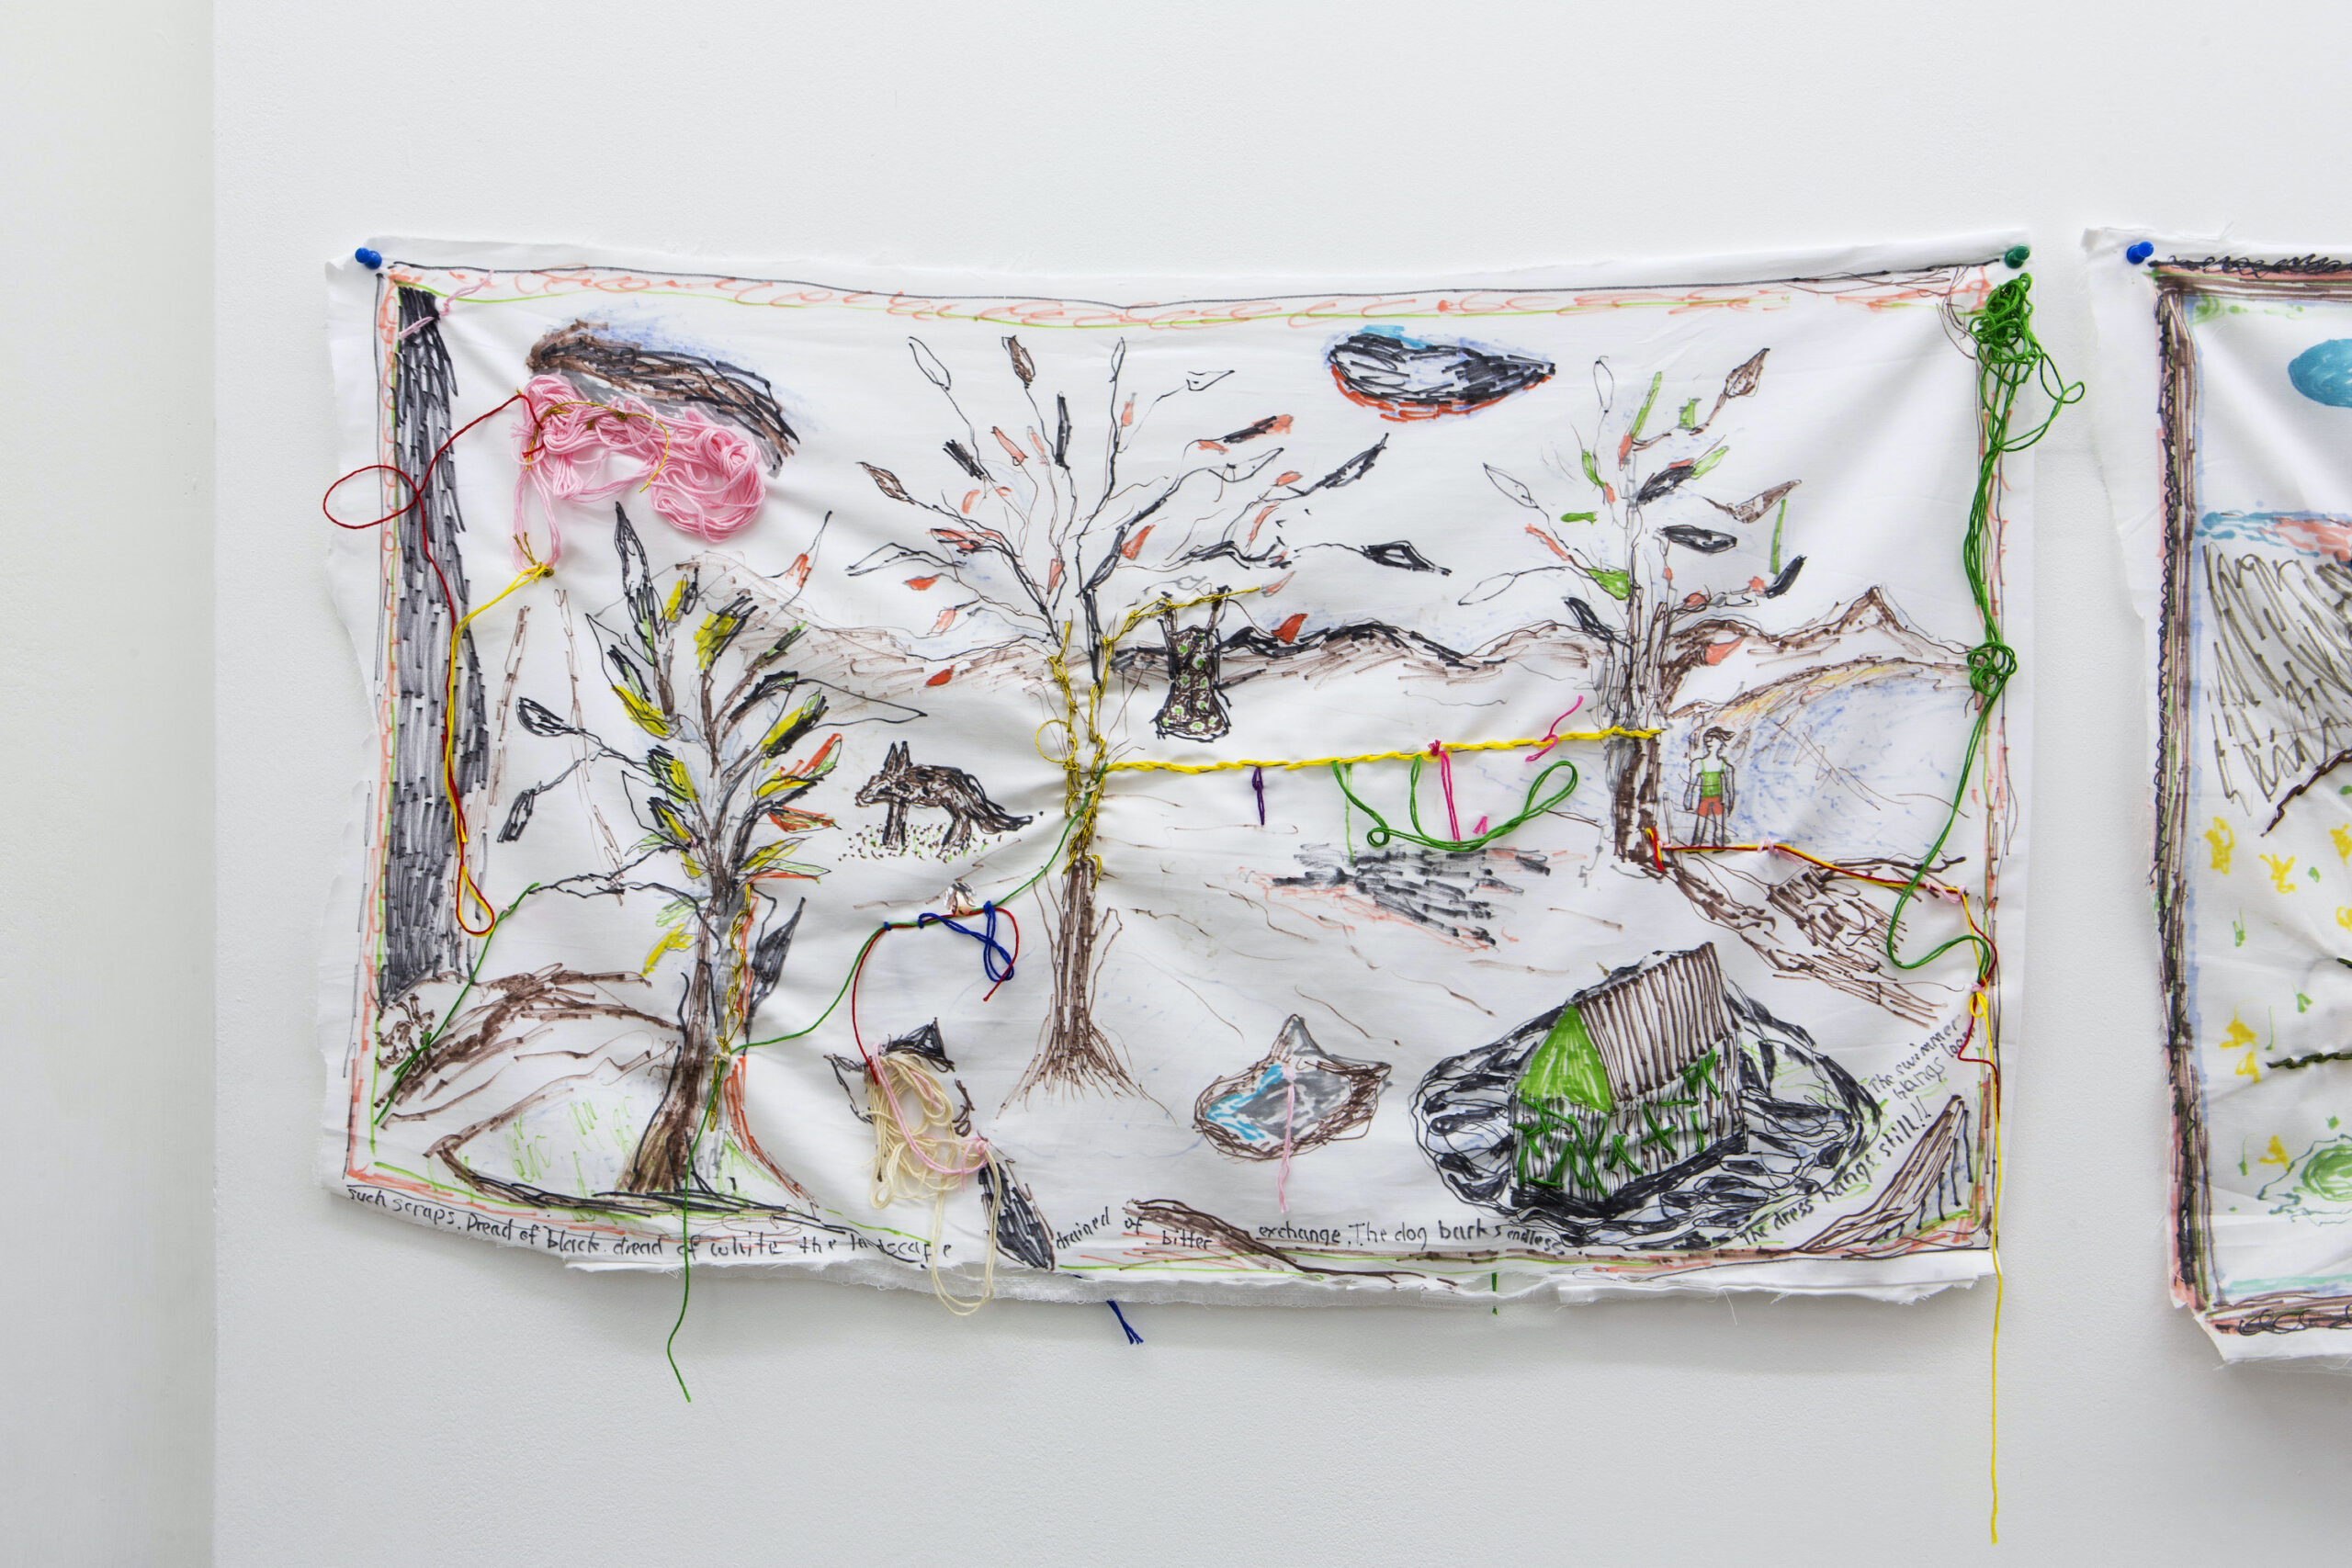 Brian Dawn Chalkley: The dog barks endless (2020) Pencil, felt tip and thread on cotton pillow case 75 cm x 45 cm